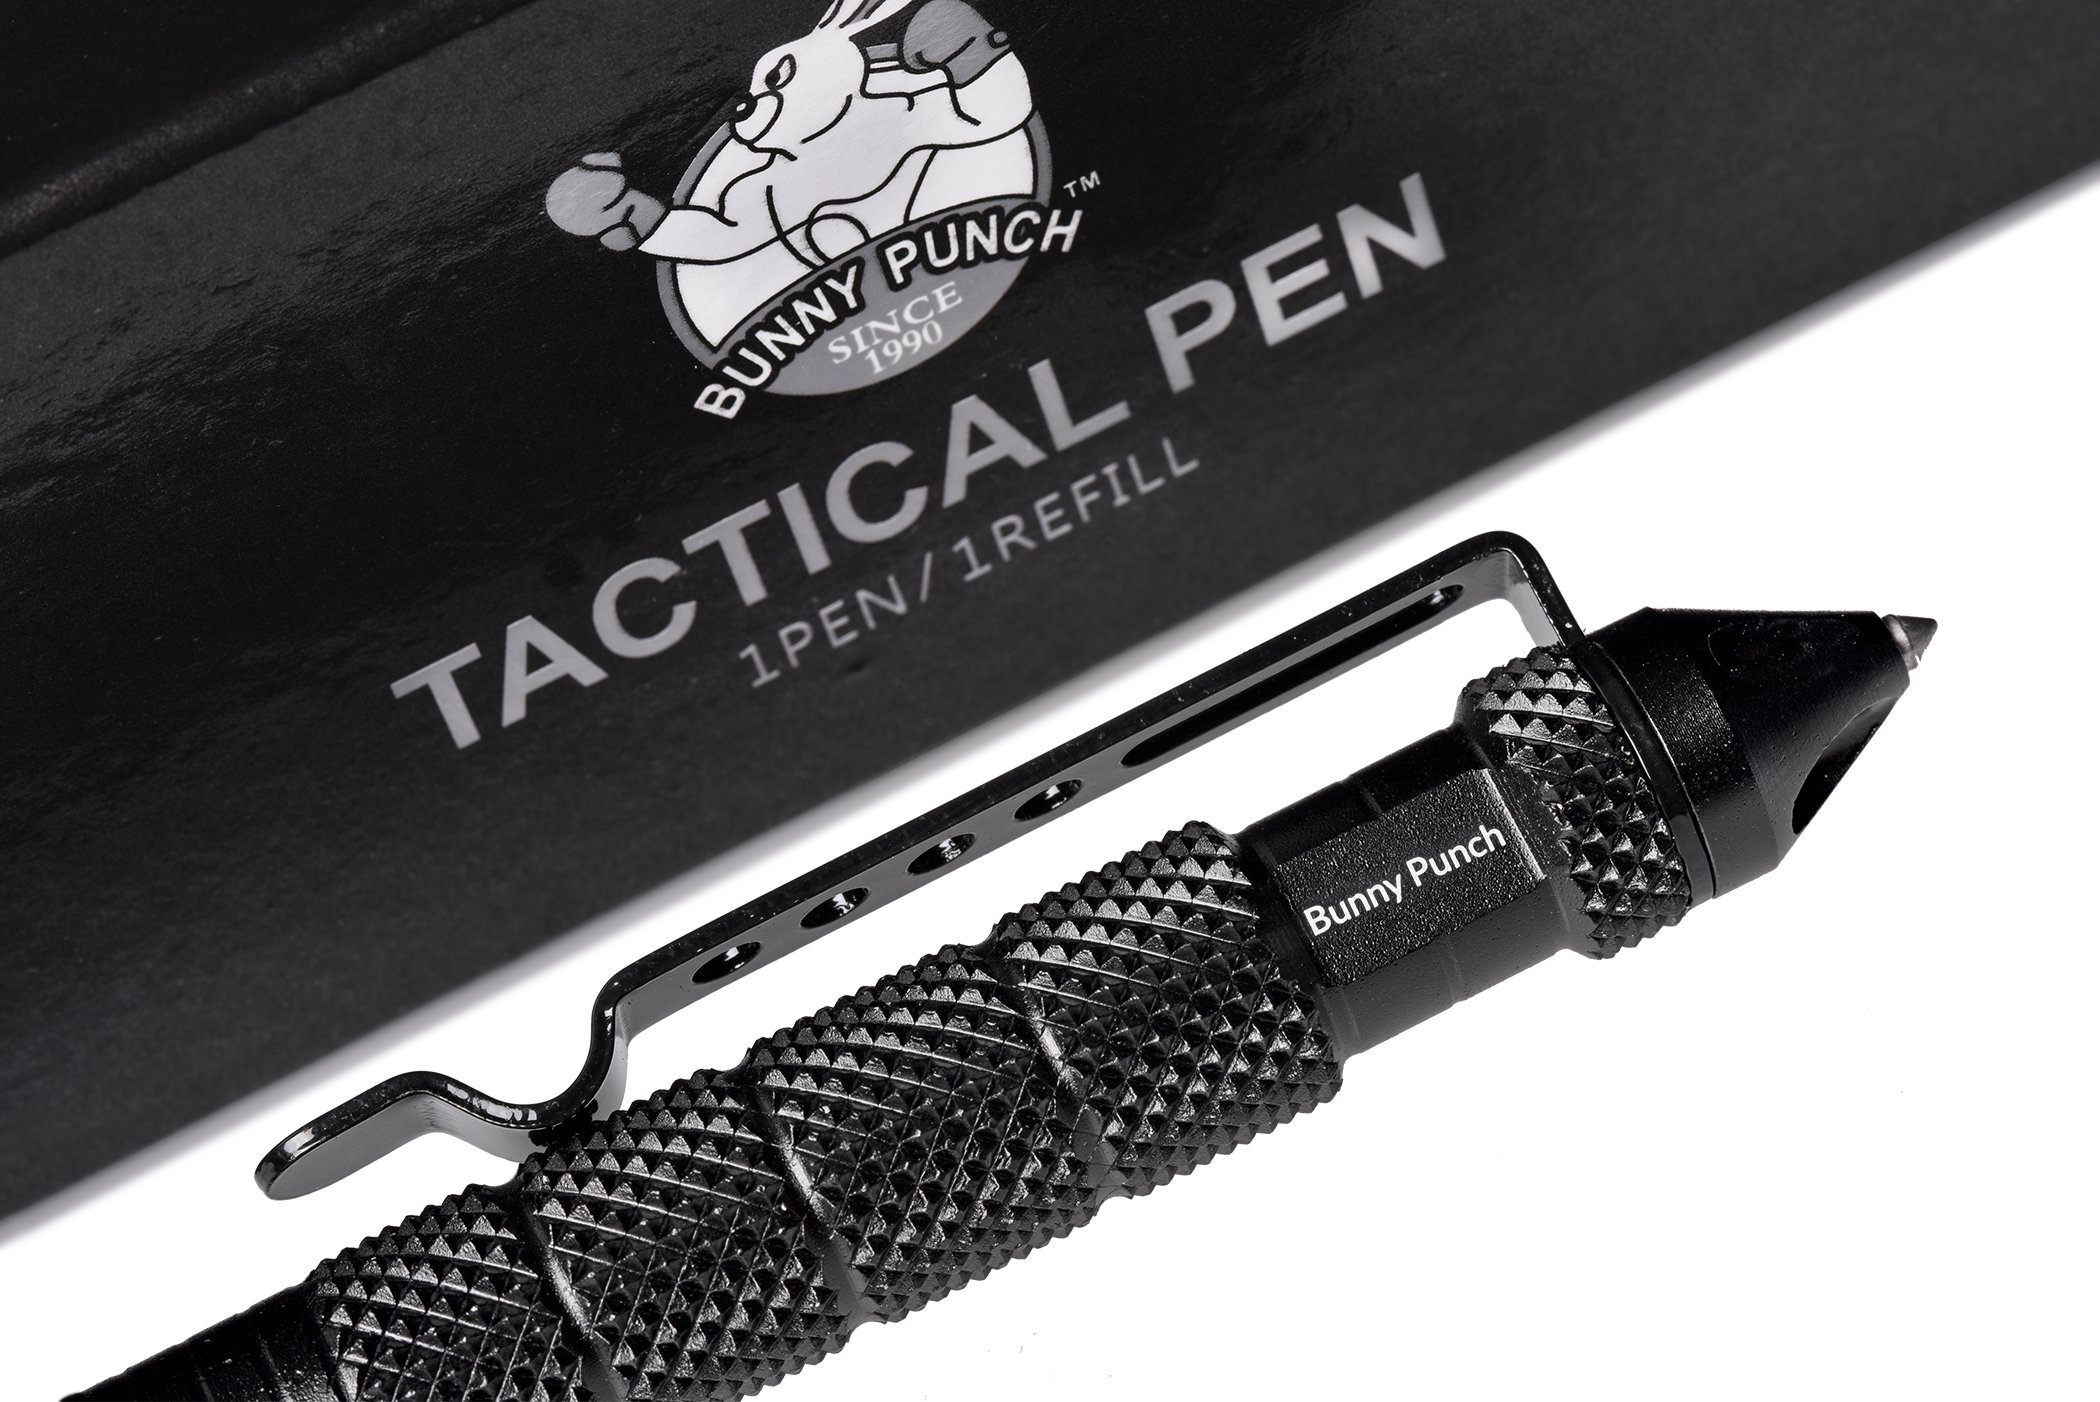 Bunny Punch Best Tactical Pen for Self-Defense with Tungsten Glass Breaker Made of Ballistic Aluminum Survival and Camping